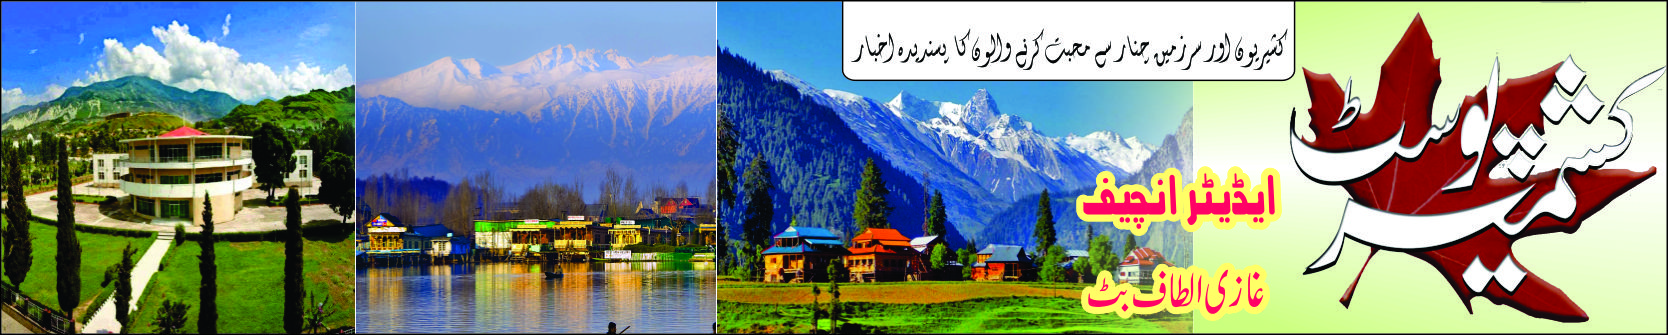 Daily Kashmir Post